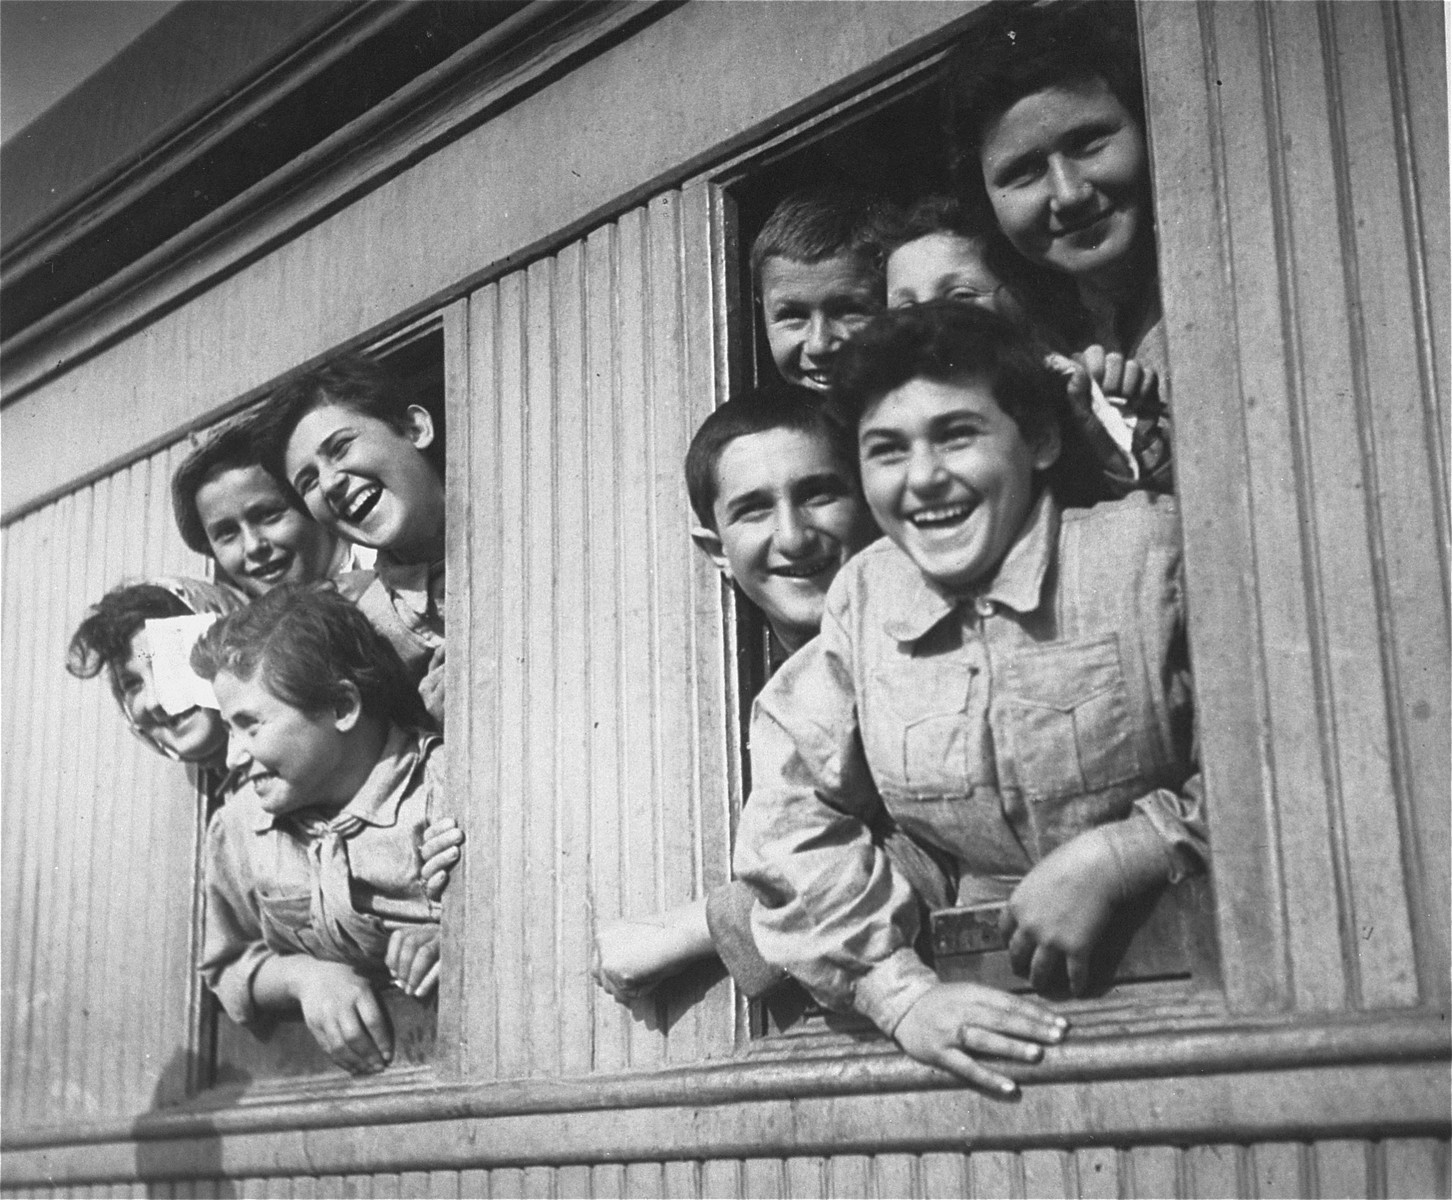 Members of the Teheran children's transport look out the windows of their train as it pulls into the station in Athlit.